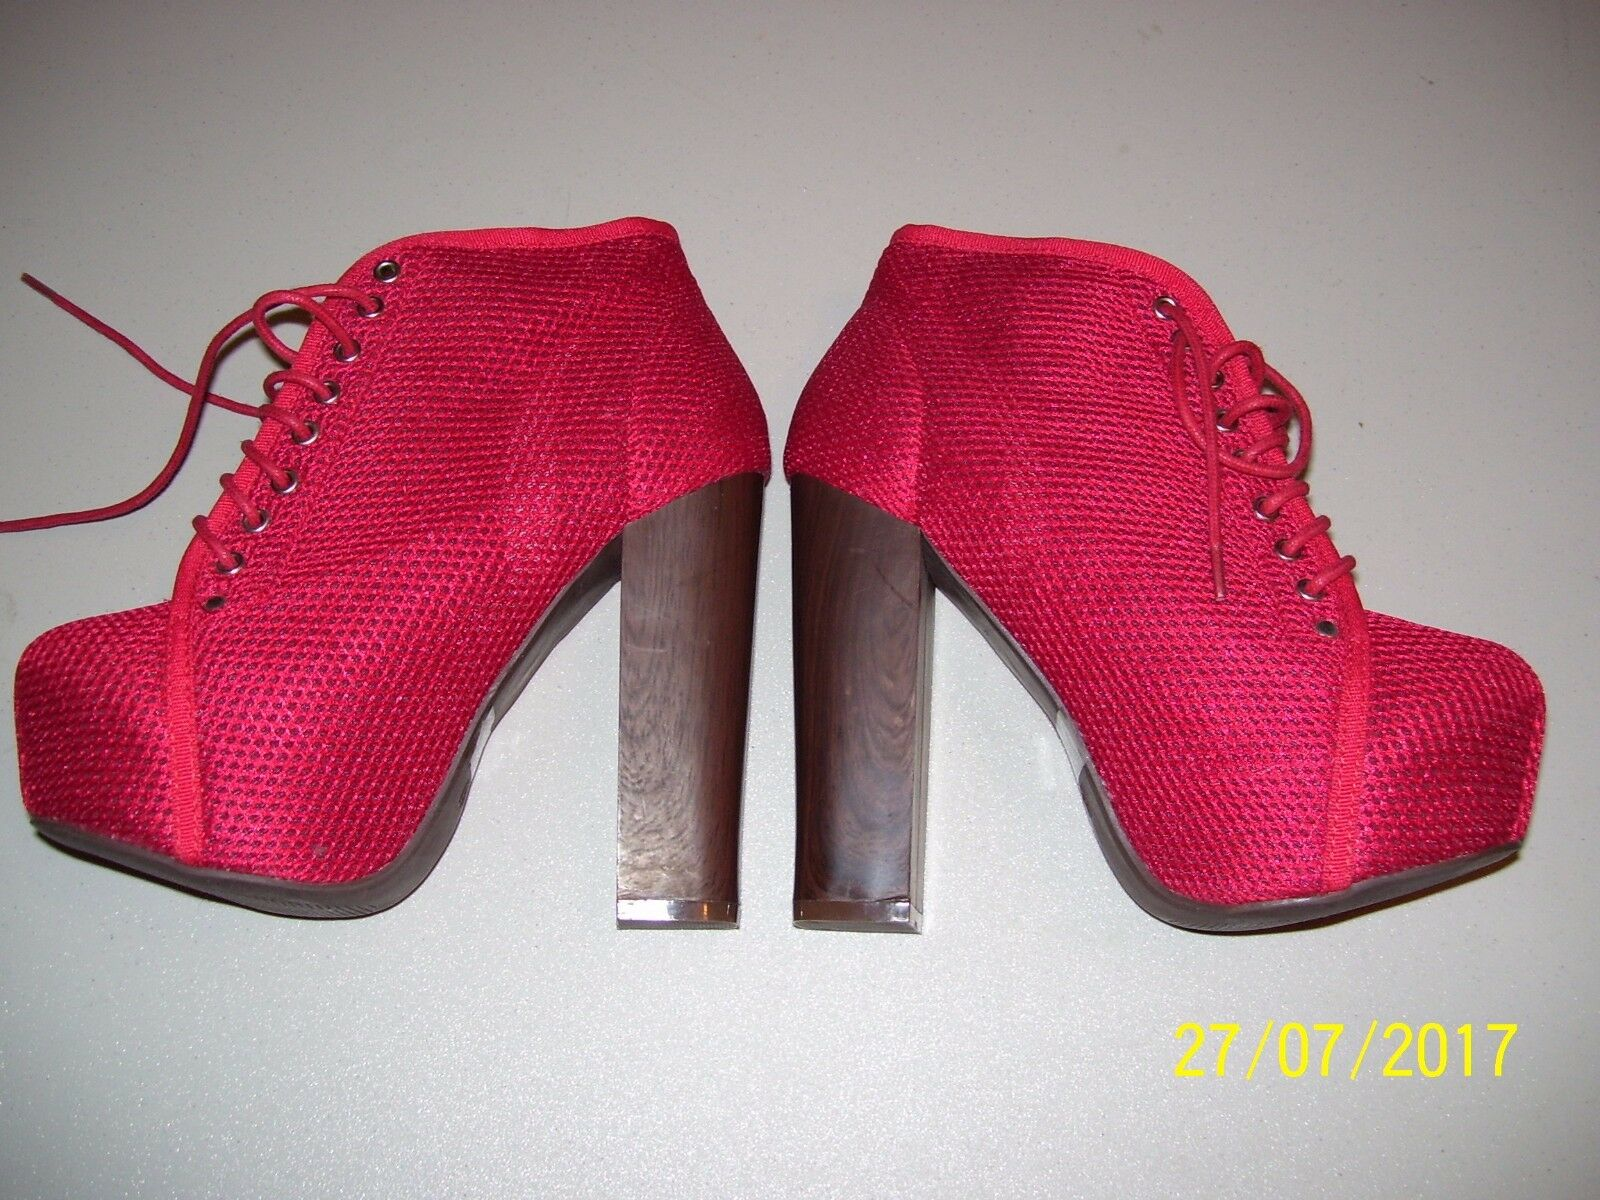 WOMENS / LADIES / GIRLS HIGH HEEL RED TIE SHOES BY VINTAGE SIZE 6, FREE SHIPPING